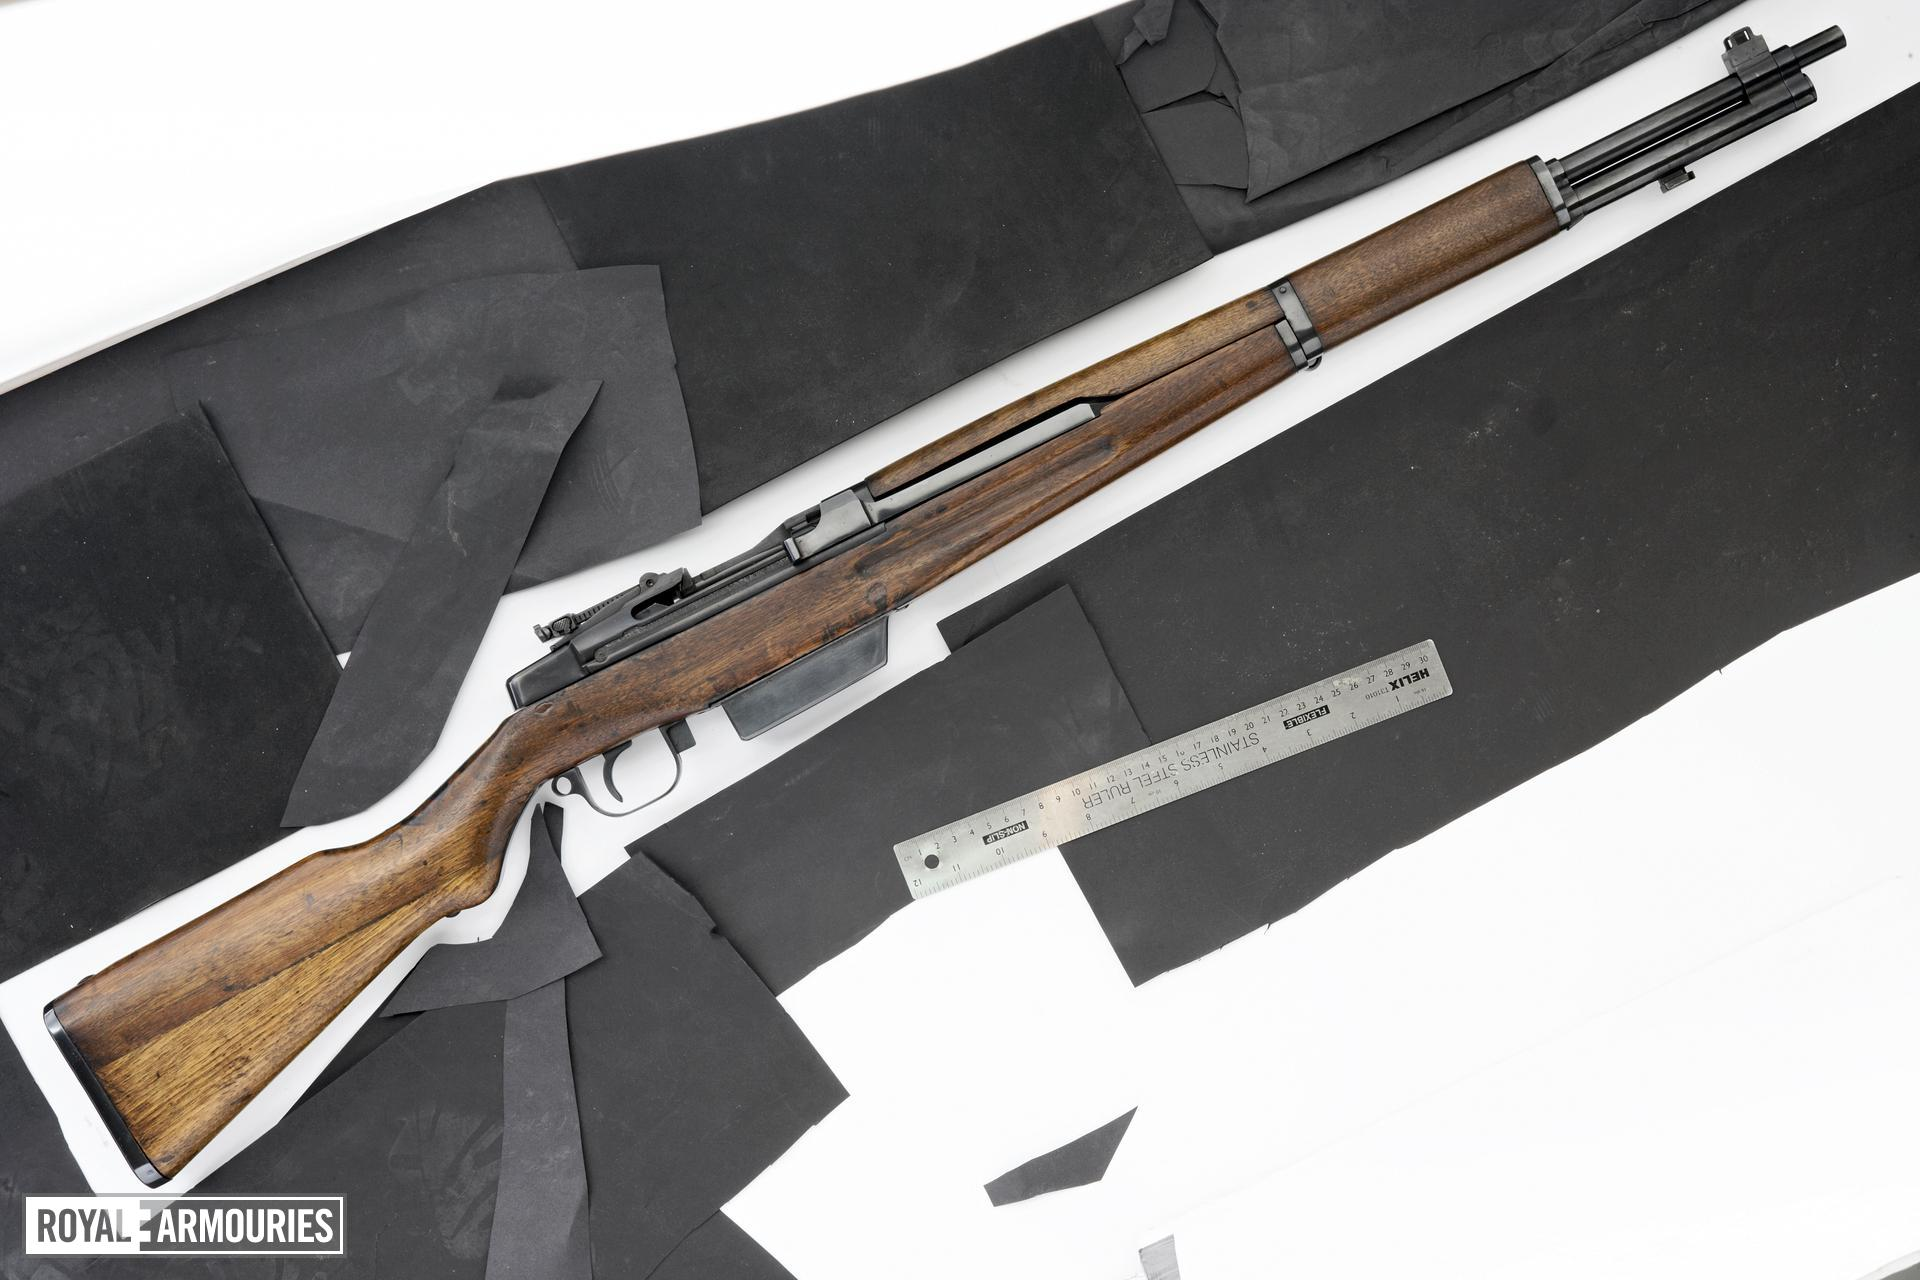 Centrefire self-loading rifle - Experimental Type 5